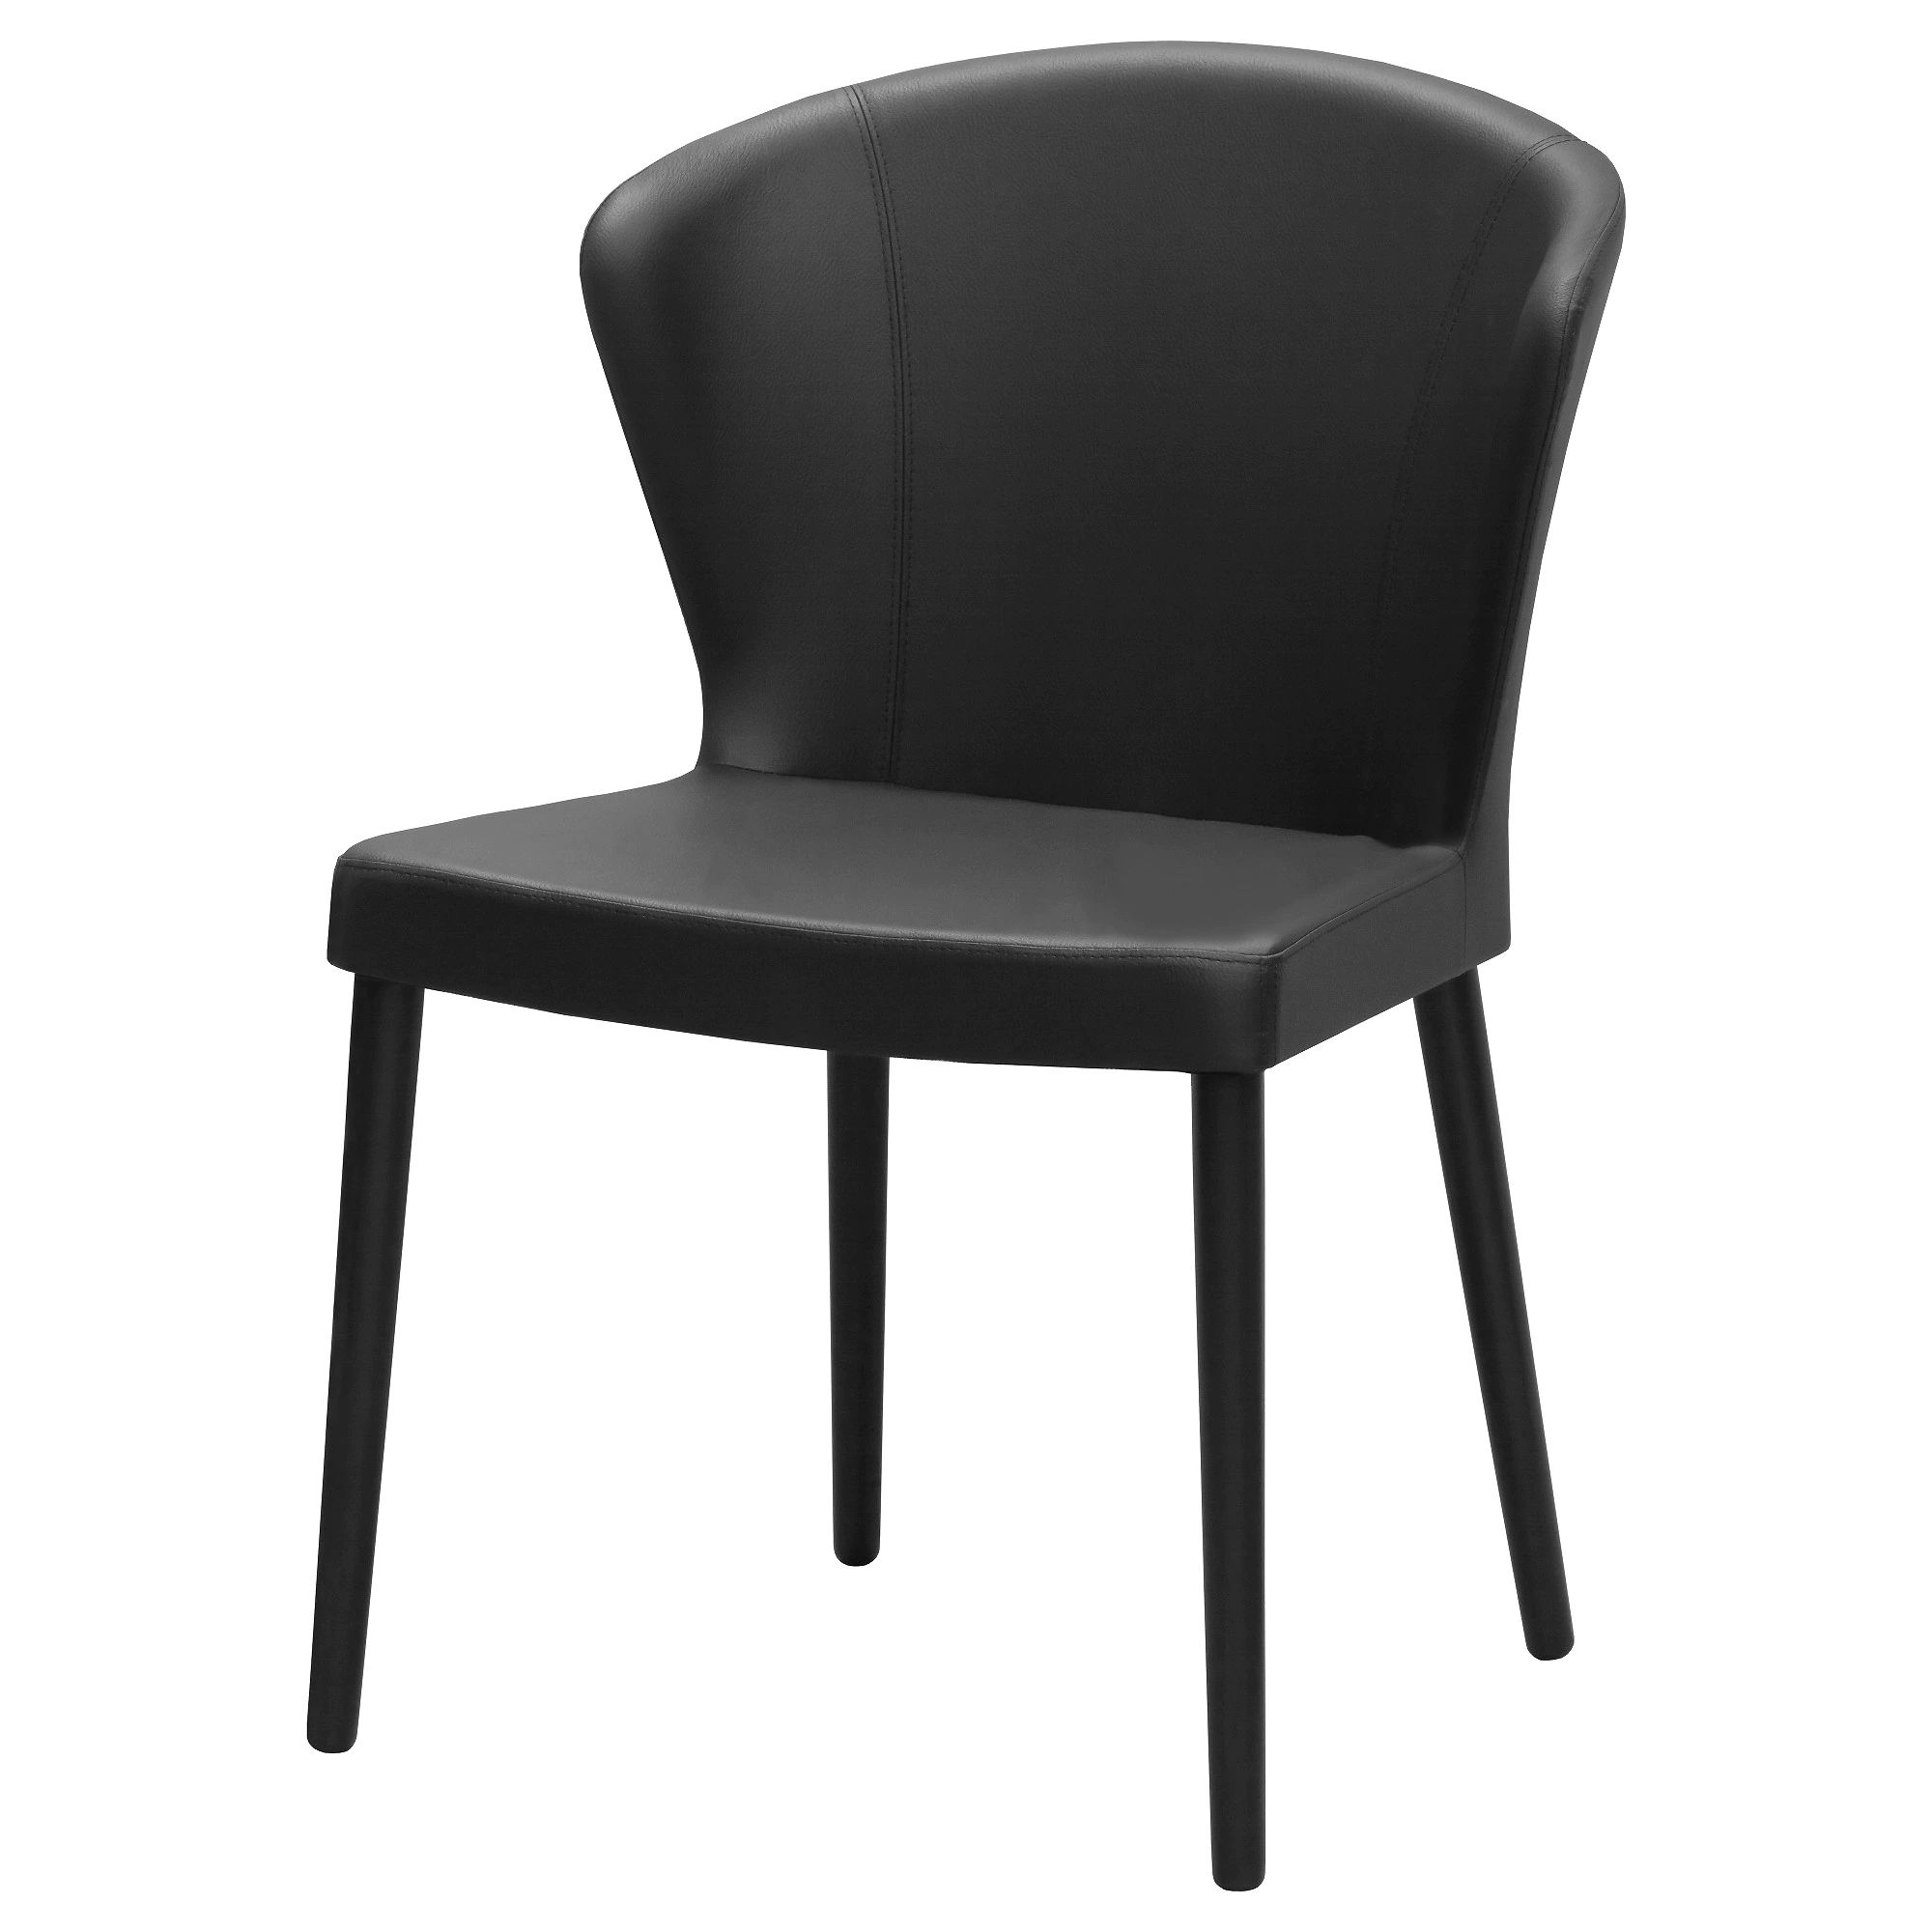 Oddmund chair idhult black stained idhult black width 22 depth 18